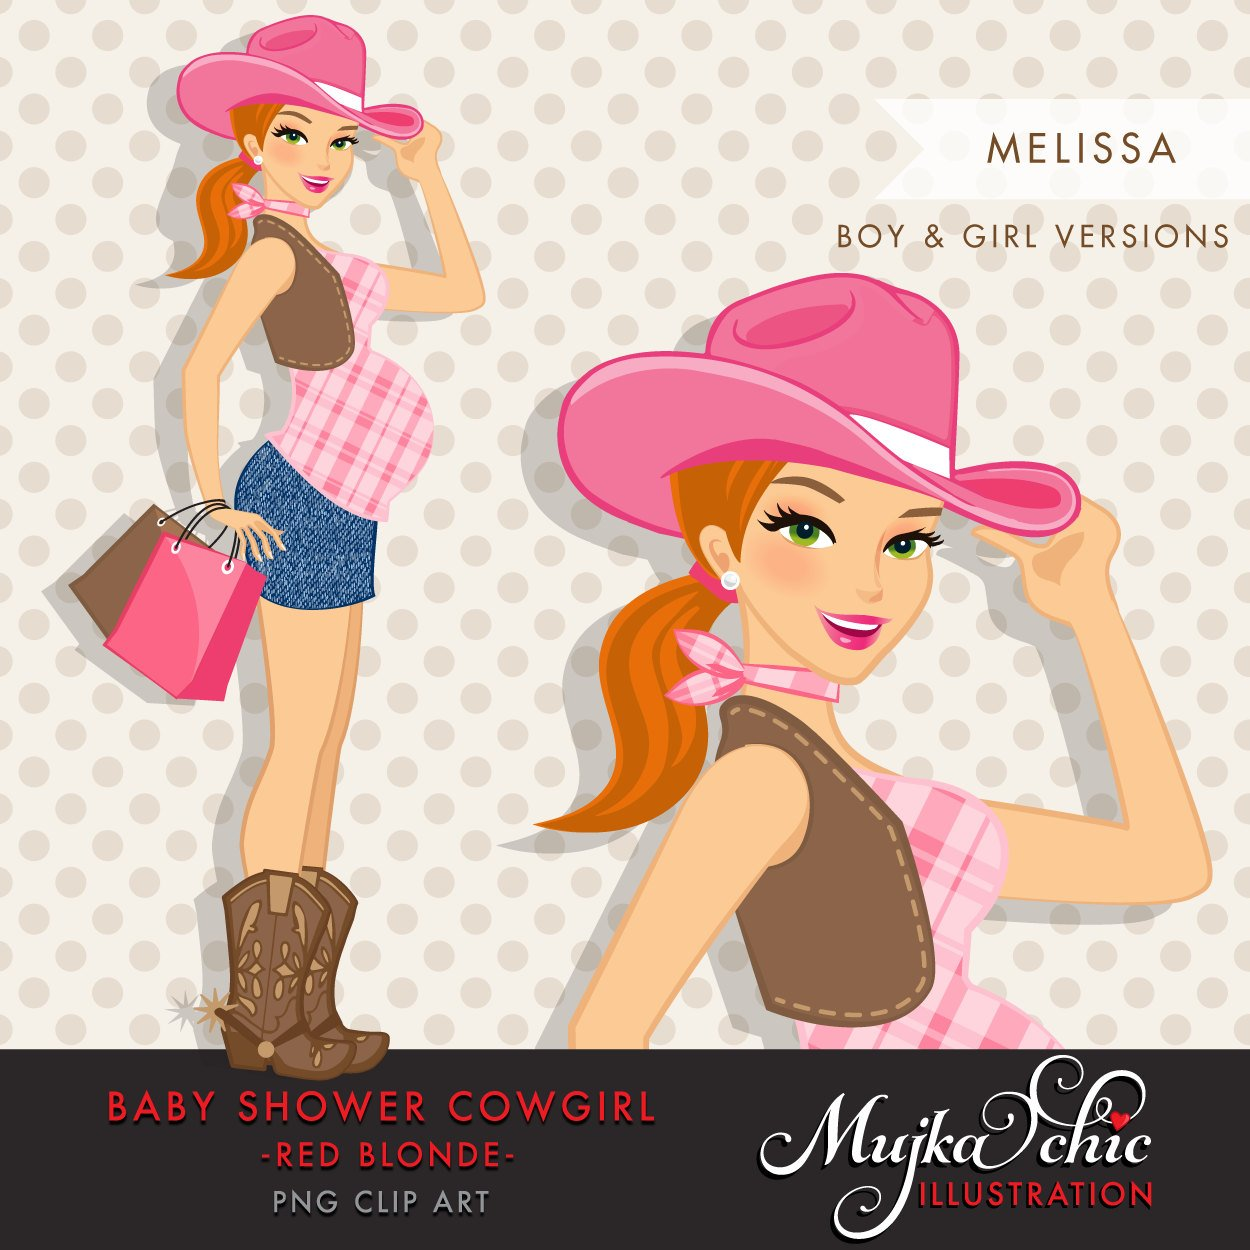 Red Blonde Cowgirl Pregnant Woman Character with gift bags Clipart. Baby Shower Party Invitation Character